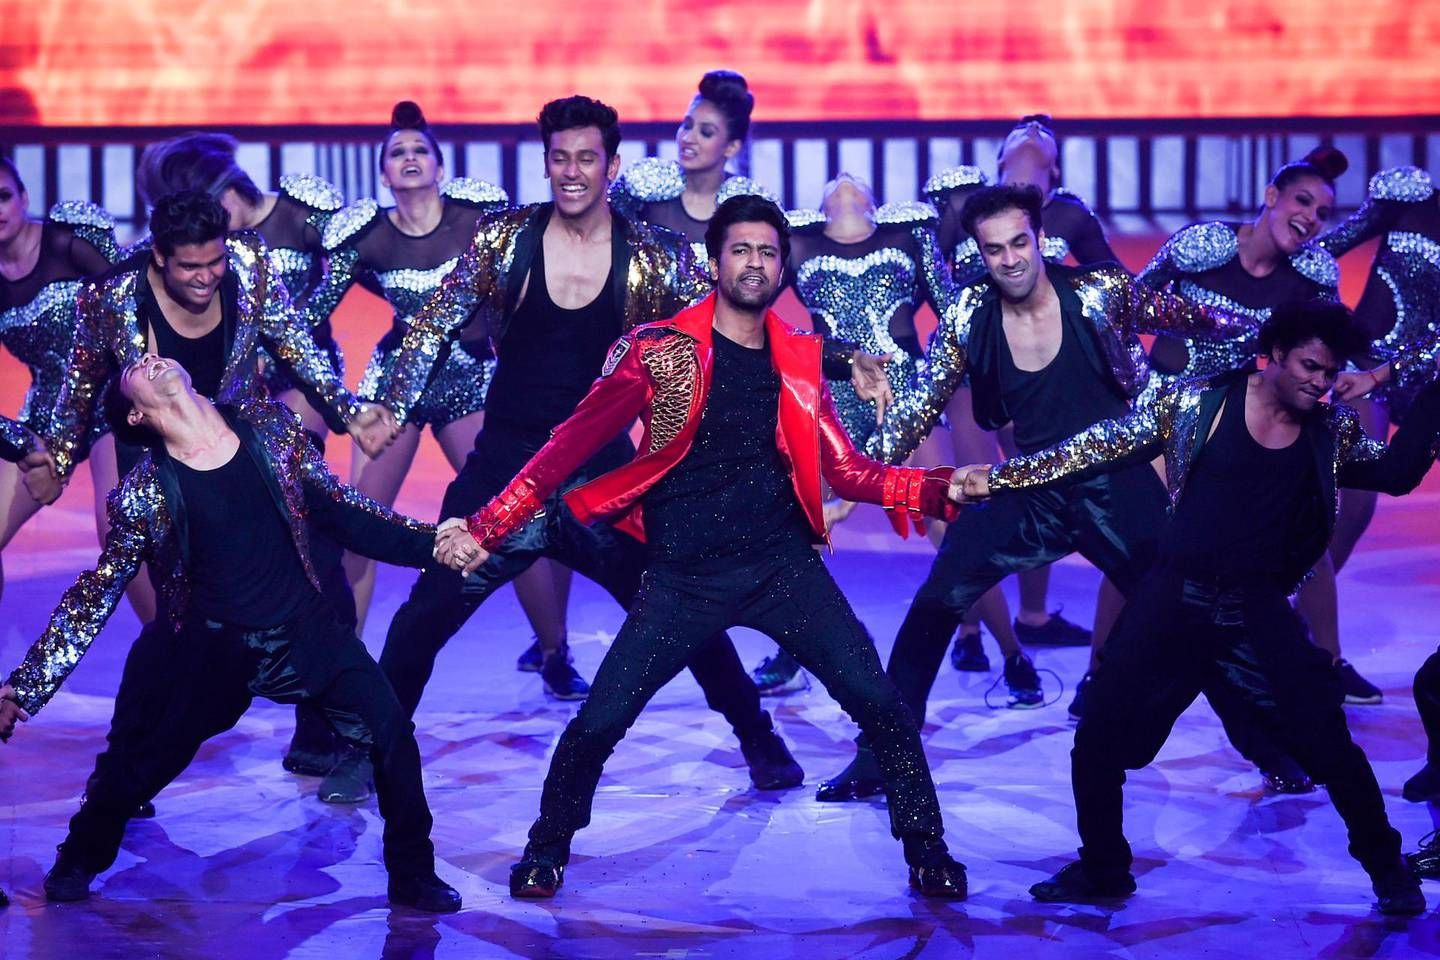 Bollywood actor Vicky Kaushal performs on stage during the 20th International Indian Film Academy (IIFA) Awards at NSCI Dome in Mumbai on September 18, 2019. / AFP / INDRANIL MUKHERJEE